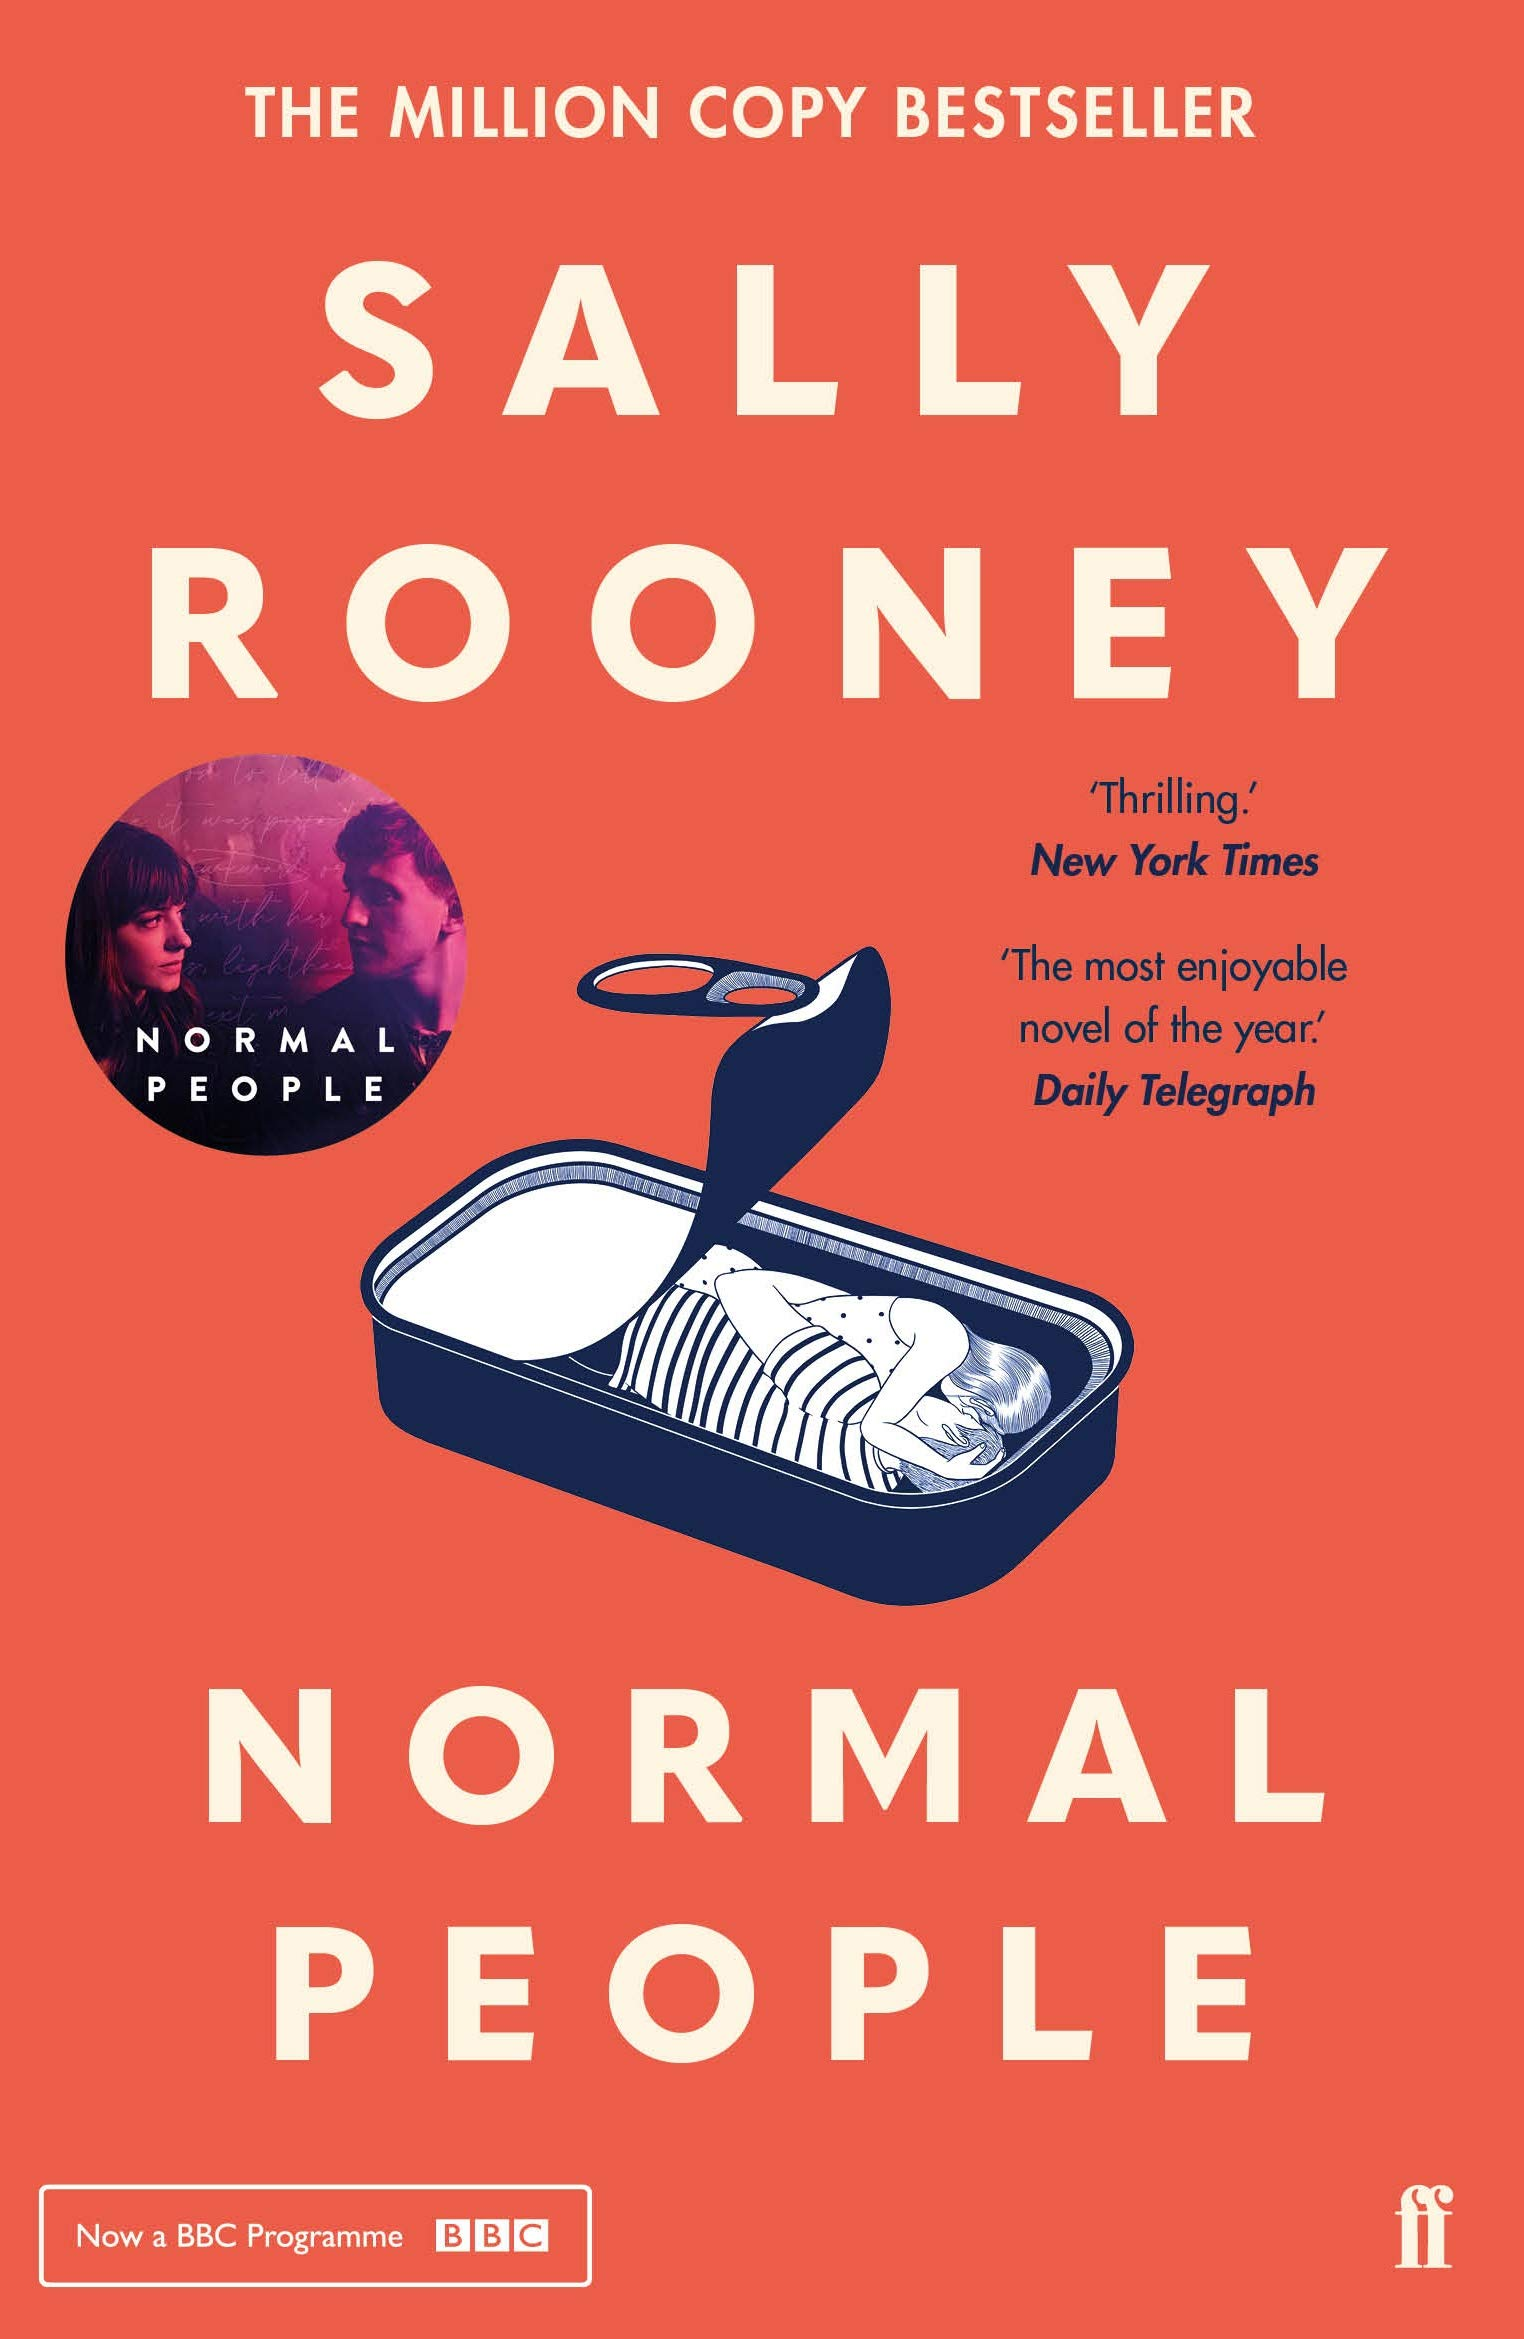 Normal People: Amazon.co.uk: Rooney, Sally: 9780571334650: Books